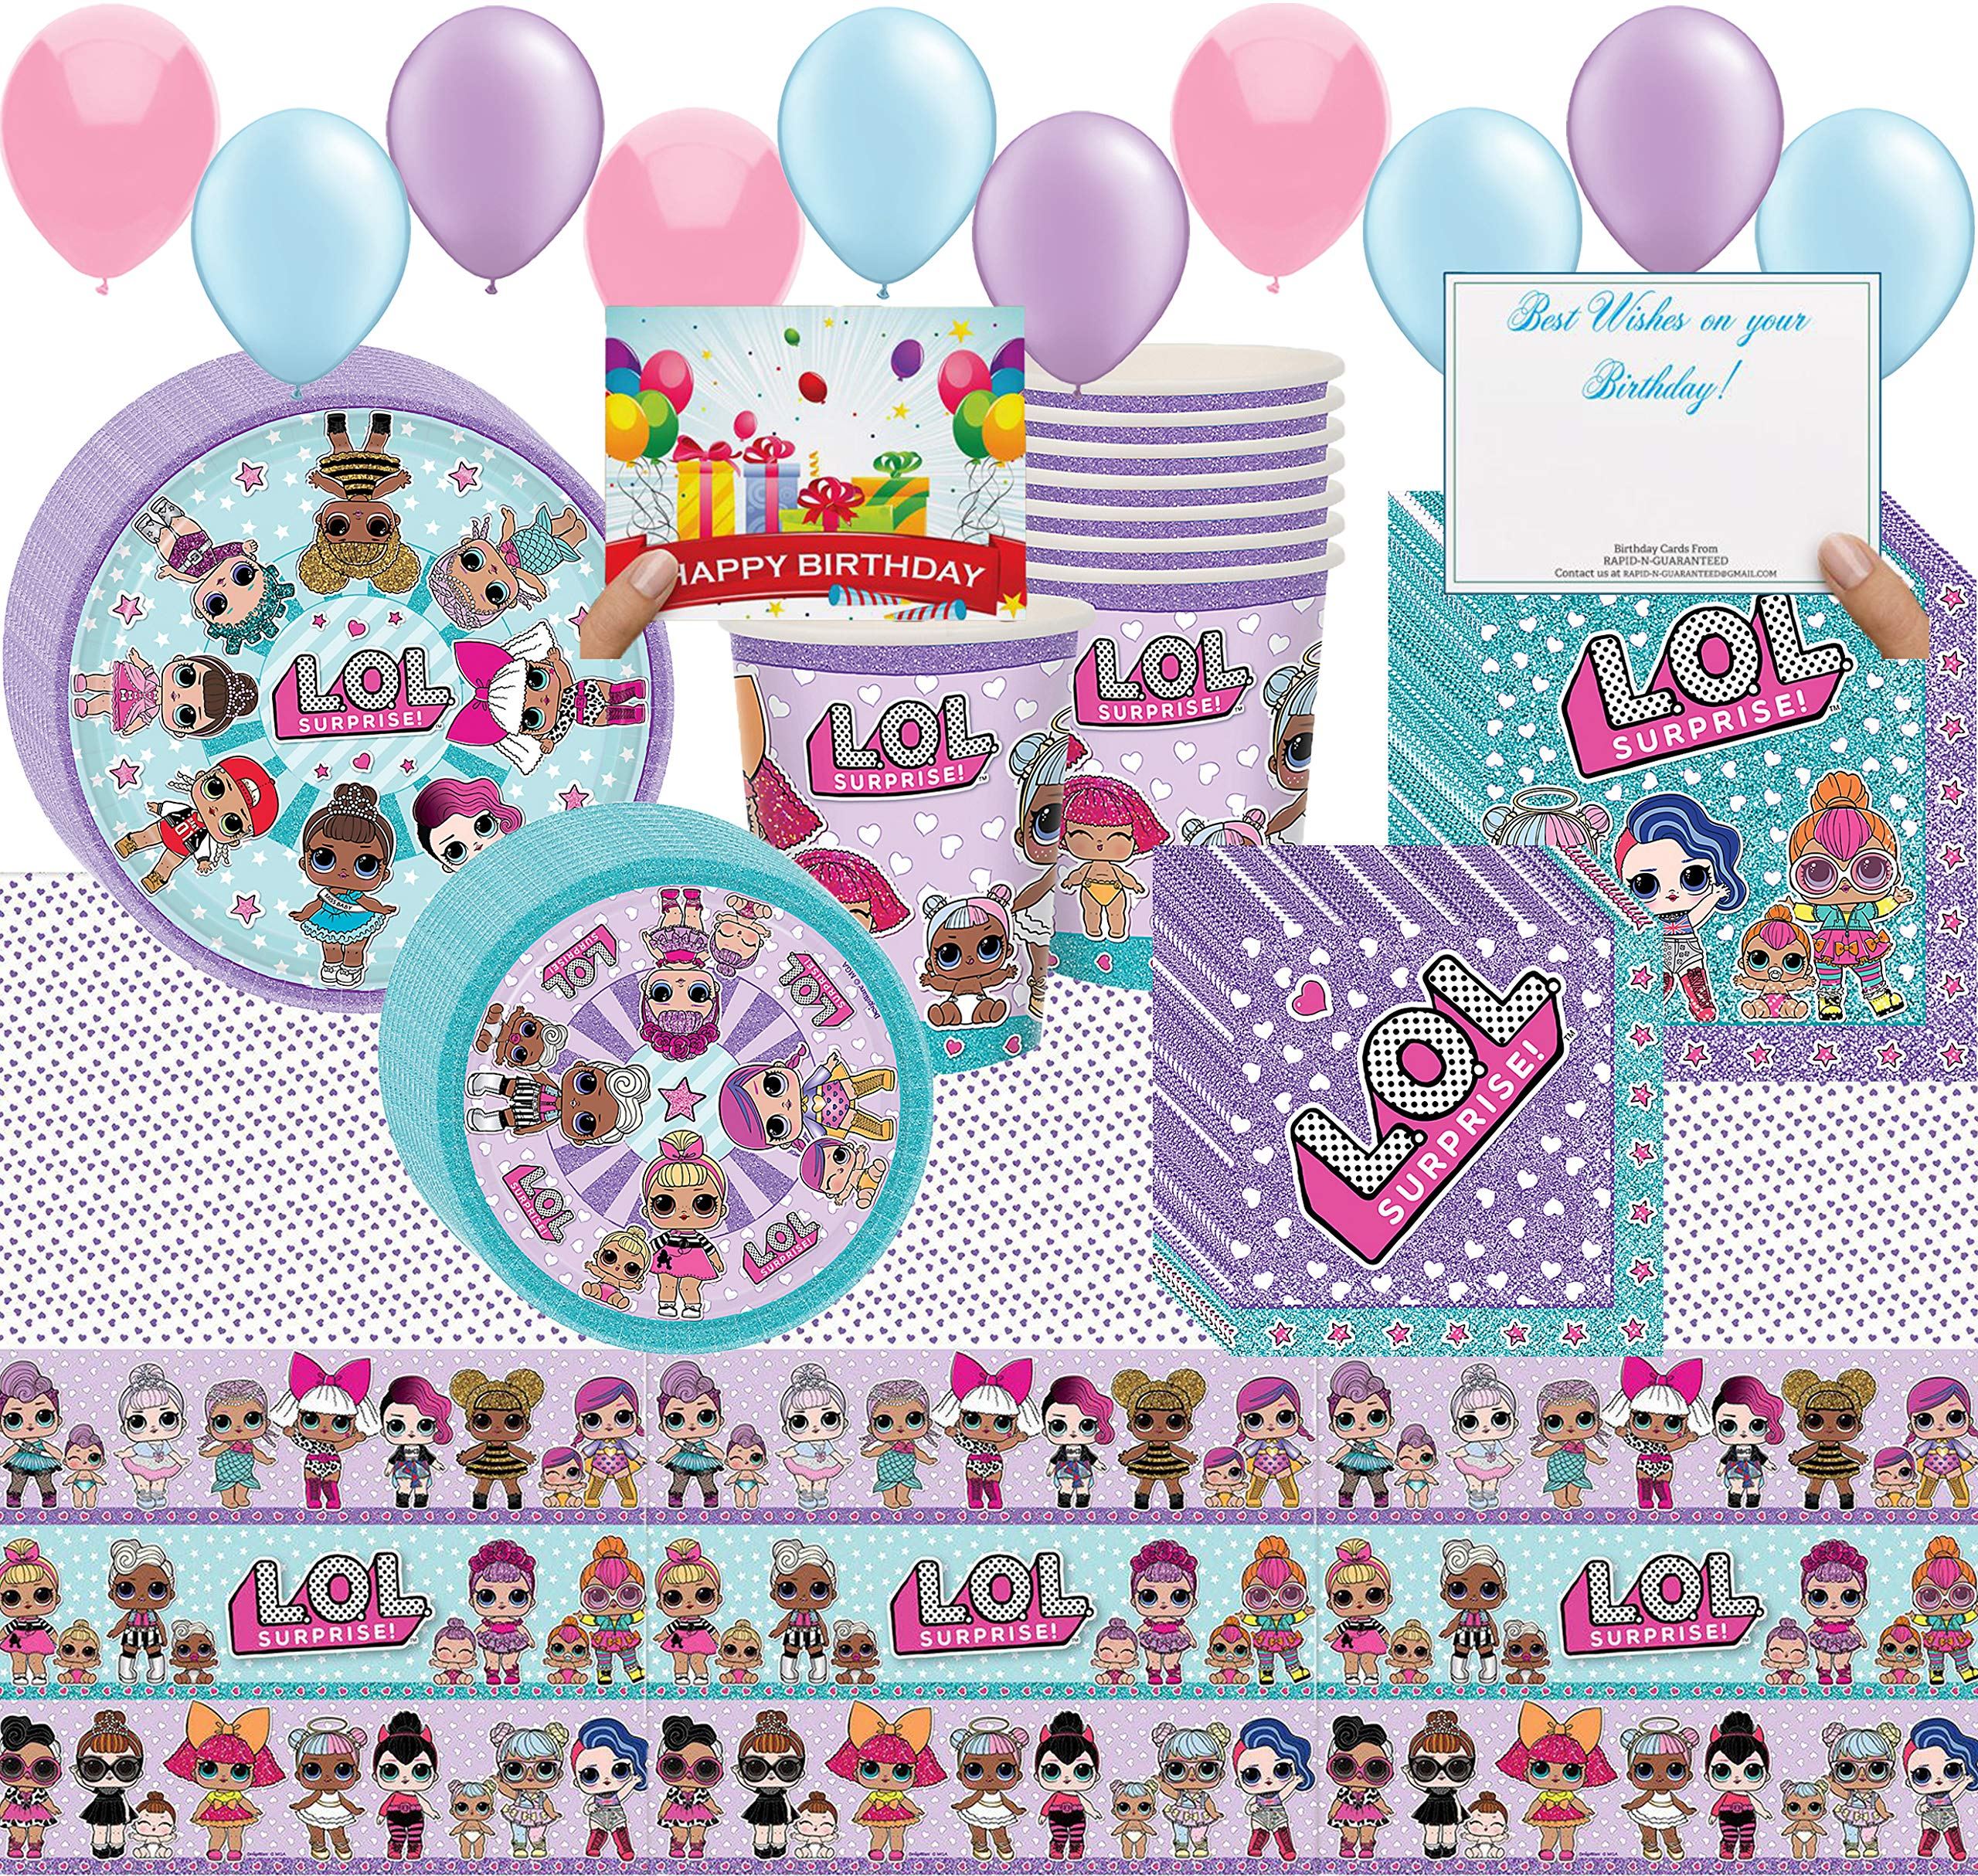 lol party Supplies Girl Birthday Decorations Cups, Plates, Napkins, Balloons, Table Cover Bundle (Party Pack Bundle)